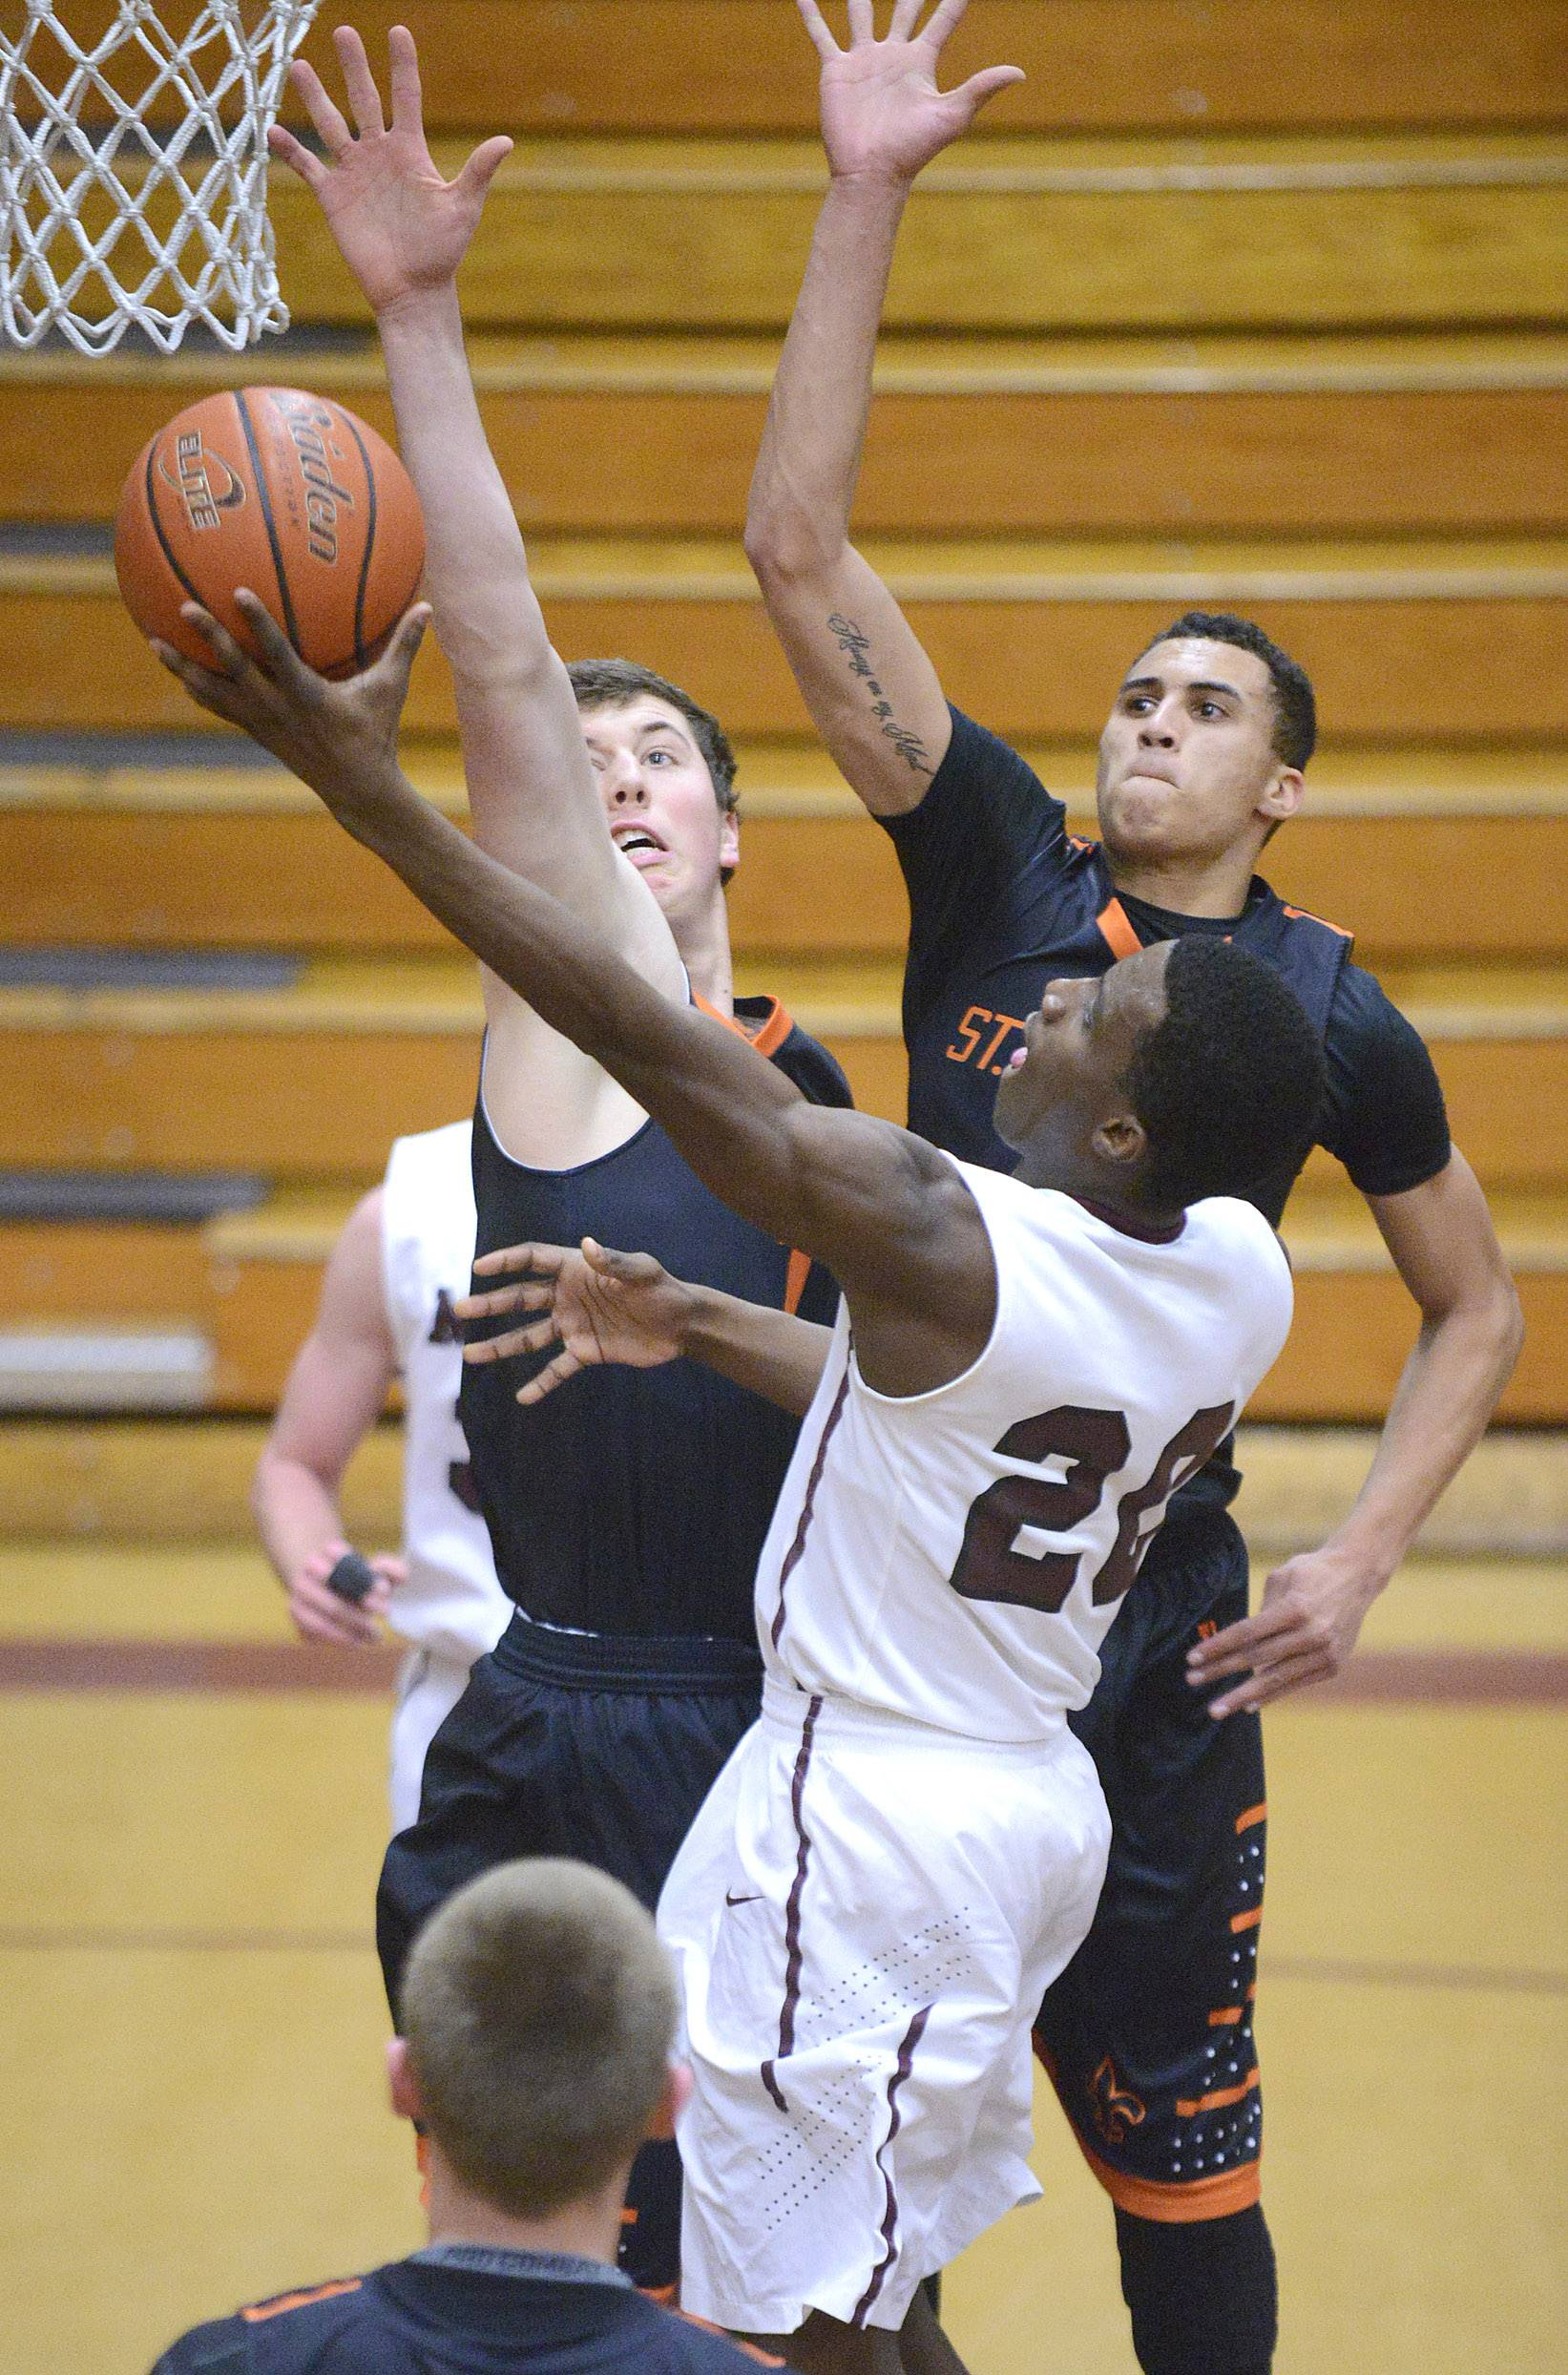 Elgin's Isaiah Butler sinks a shot past St. Charles East's Dave Mason, left, and AJ Washington in the first quarter.